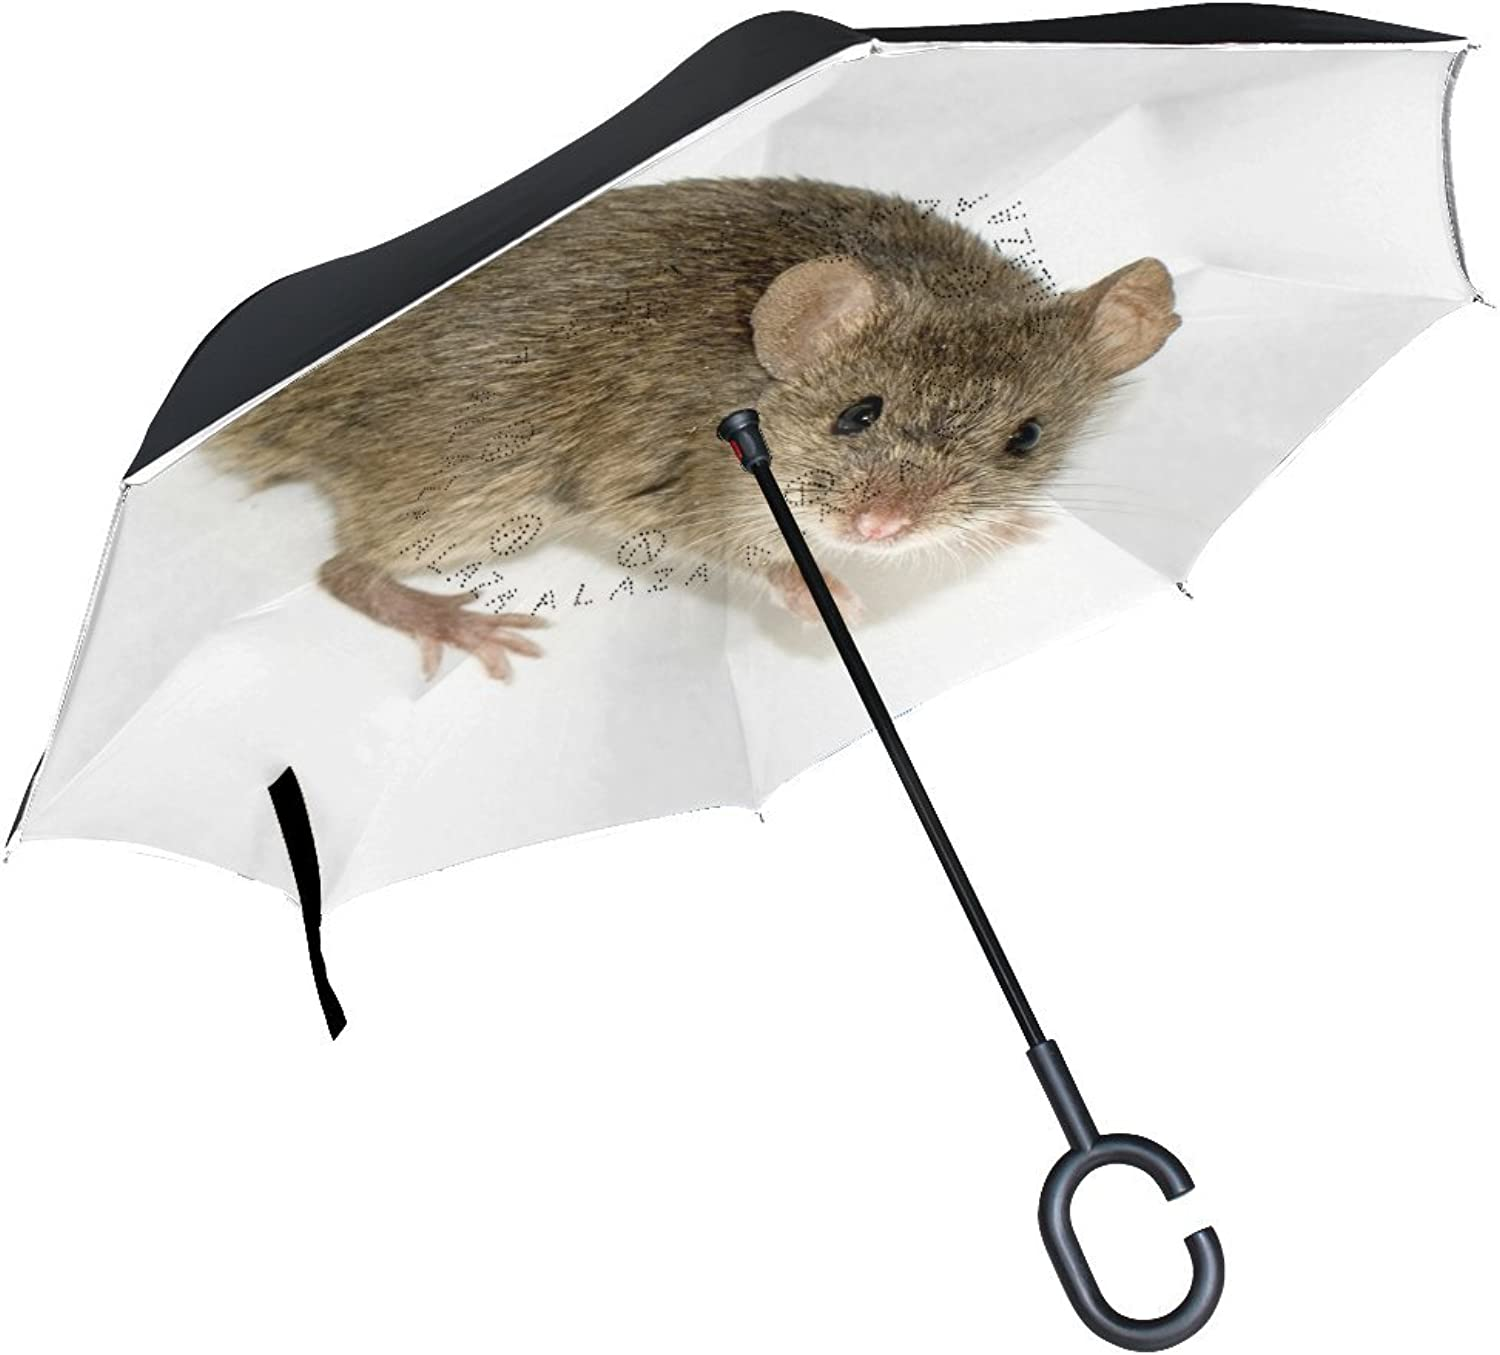 Animal Mouse Roof Rat Adorable Fluffy Small Brown Animated Pet Ingreened Umbrella Large Double Layer Outdoor Rain Sun Car Reversible Umbrella